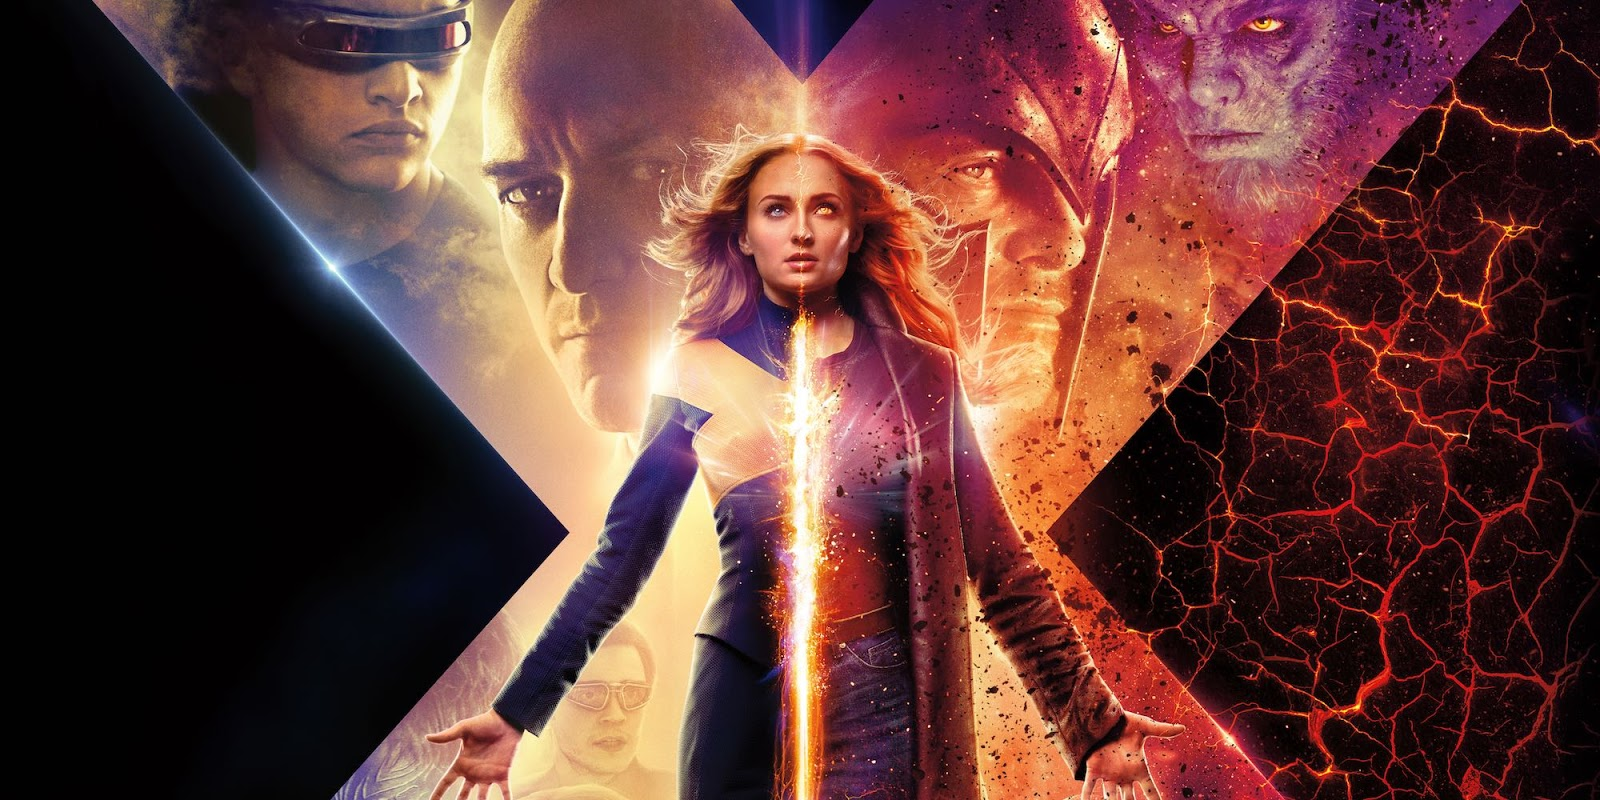 'Dark Phoenix' Movie Review: Say goodbye to the X-Men